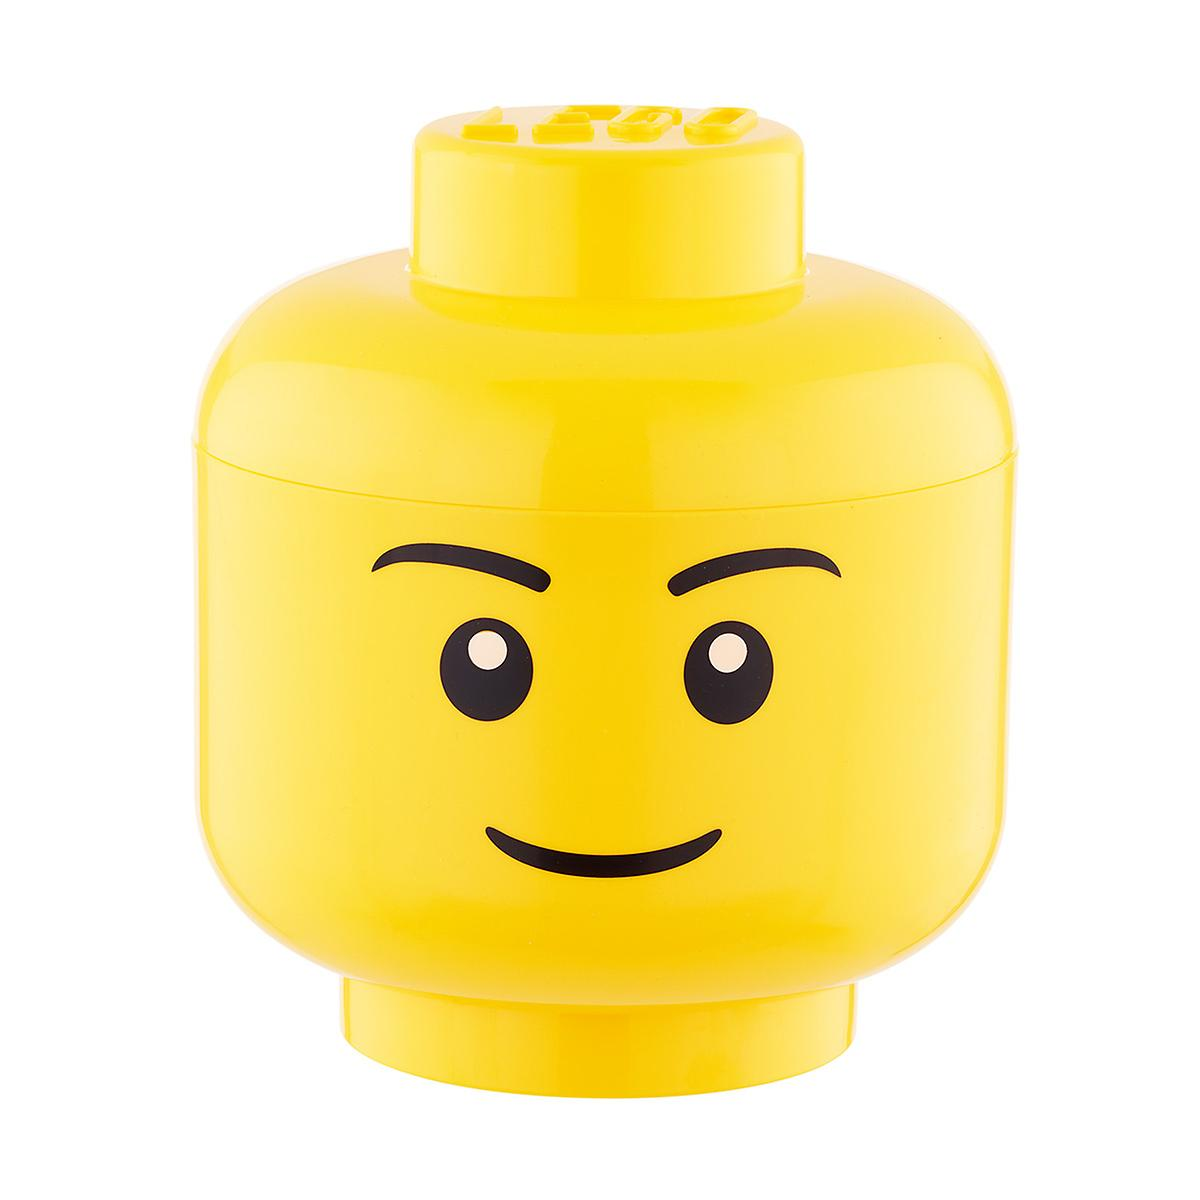 Best Lego Storage Containers